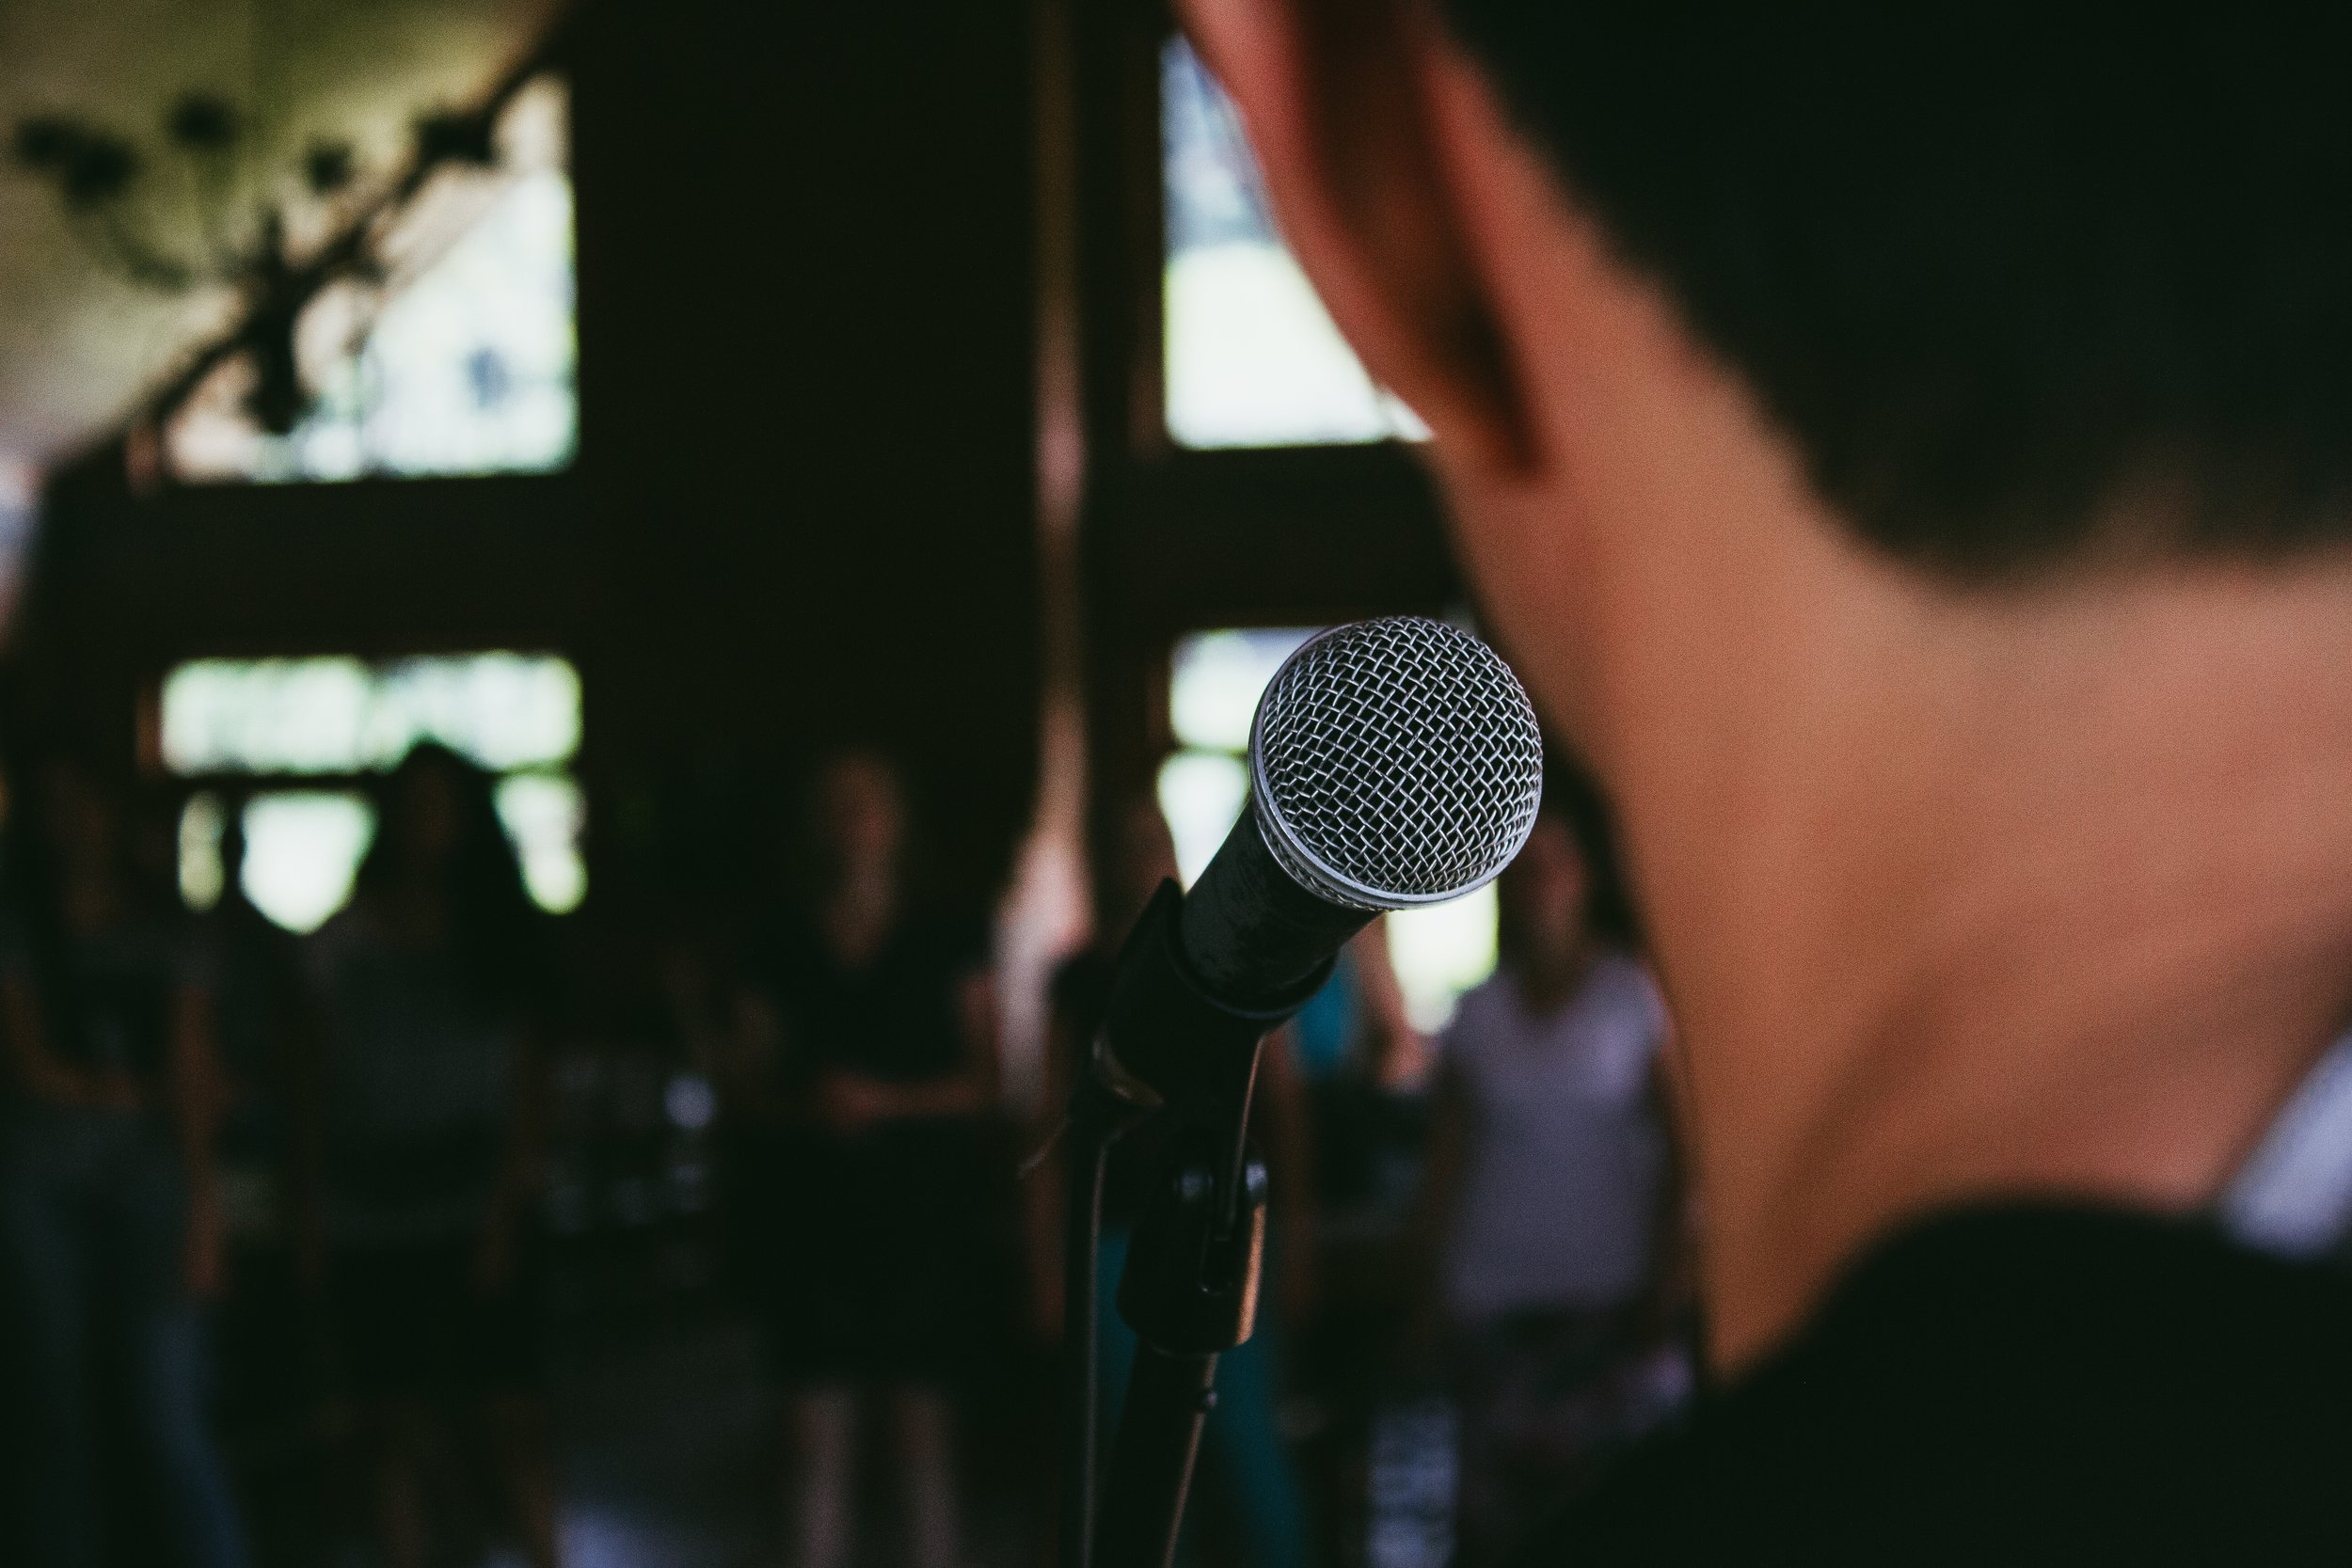 Public speaking anxiety, or glossophobia, affects about 73% of the population. The underlying fear is judgment or negative evaluation by others. - National Institute of Mental Health